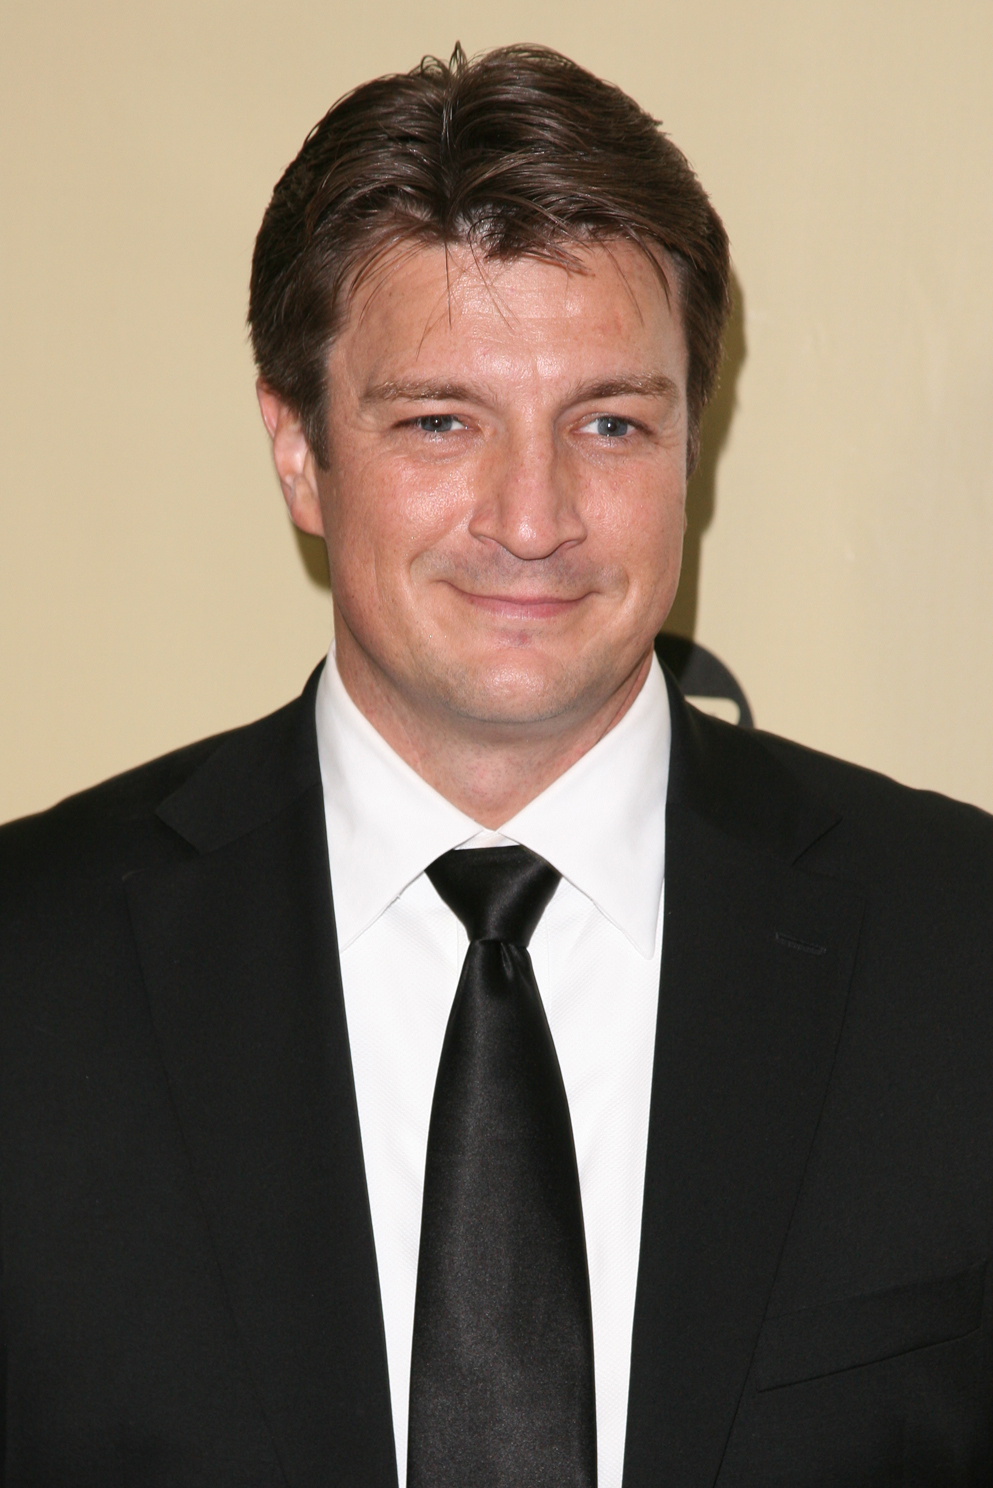 Is Nathan Fillion's Former Show Firefly Returning to TV?